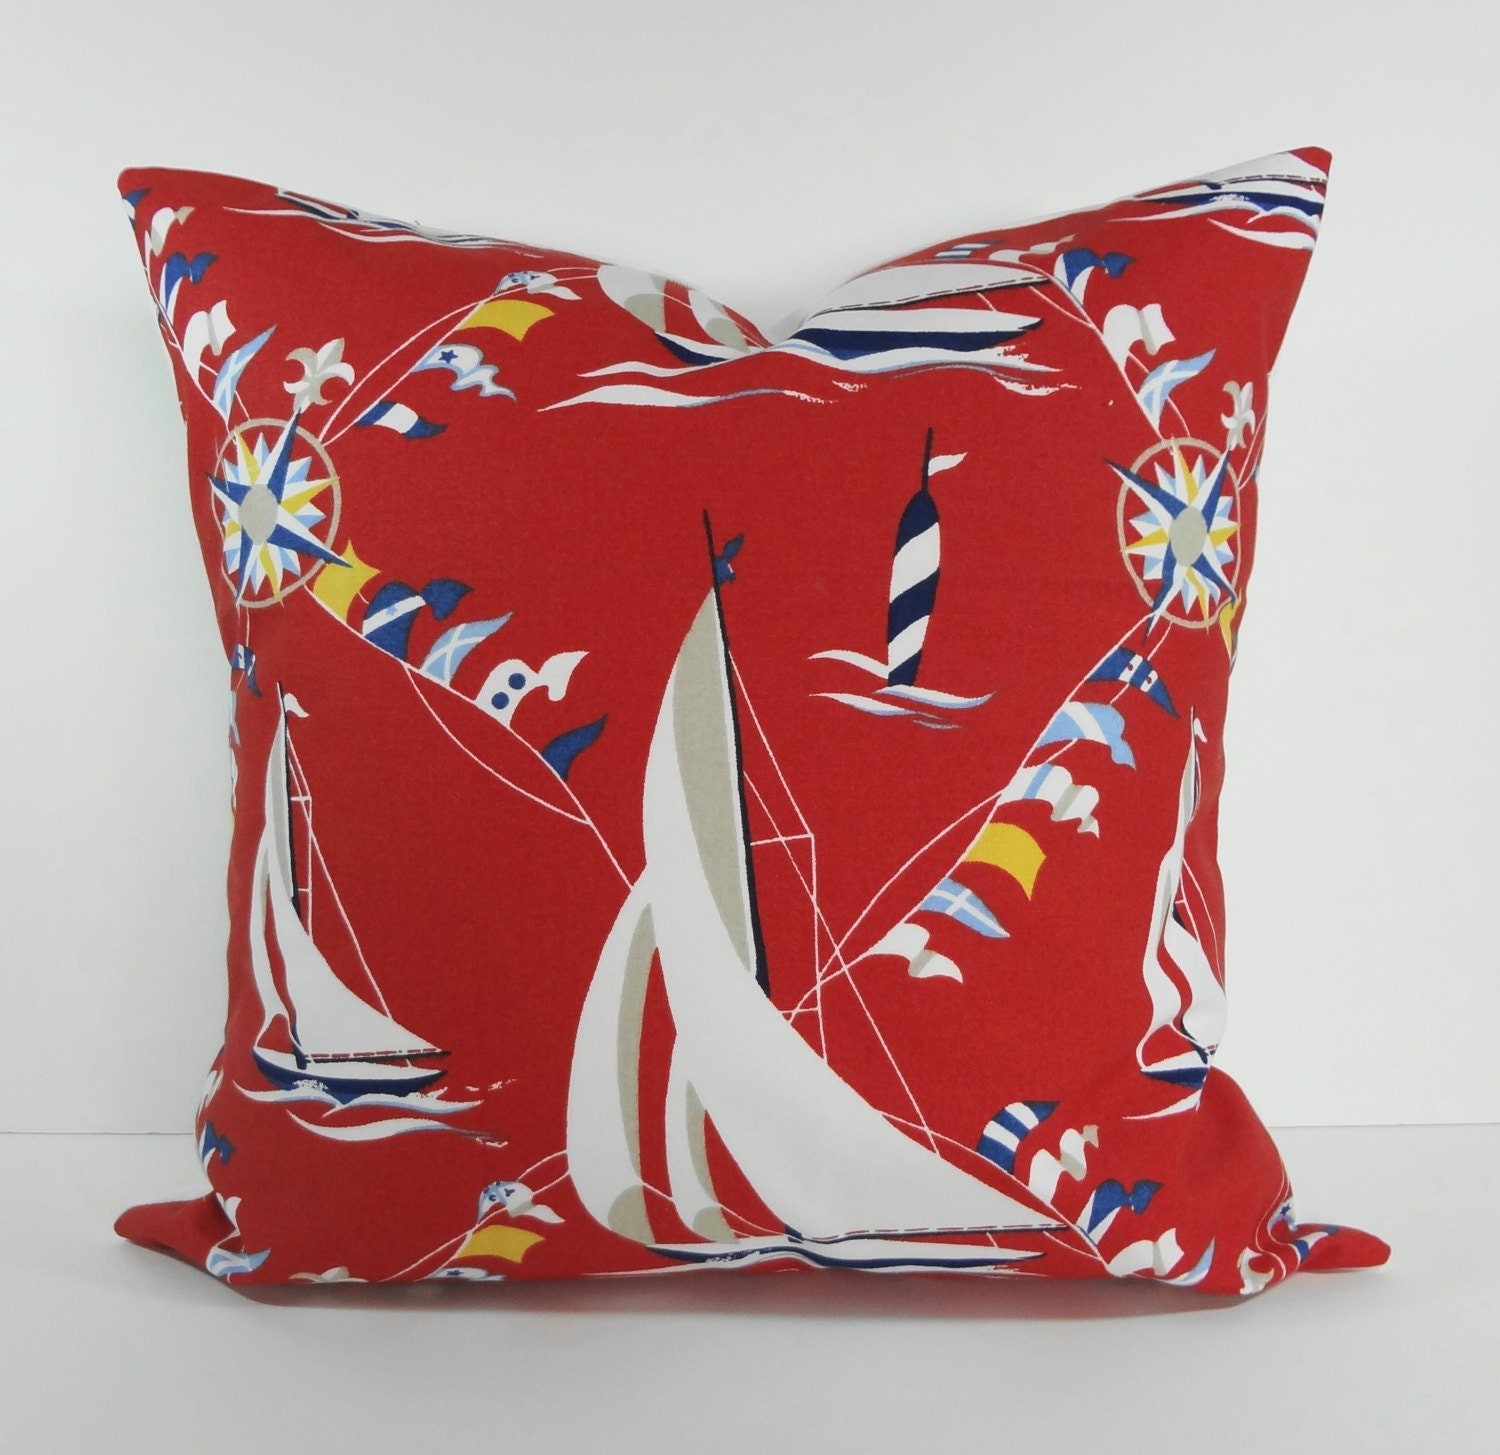 Nautical Decorative Pillow Covers : Designer Nautical Pillow Cover Decorative Pillow by pillows4fun